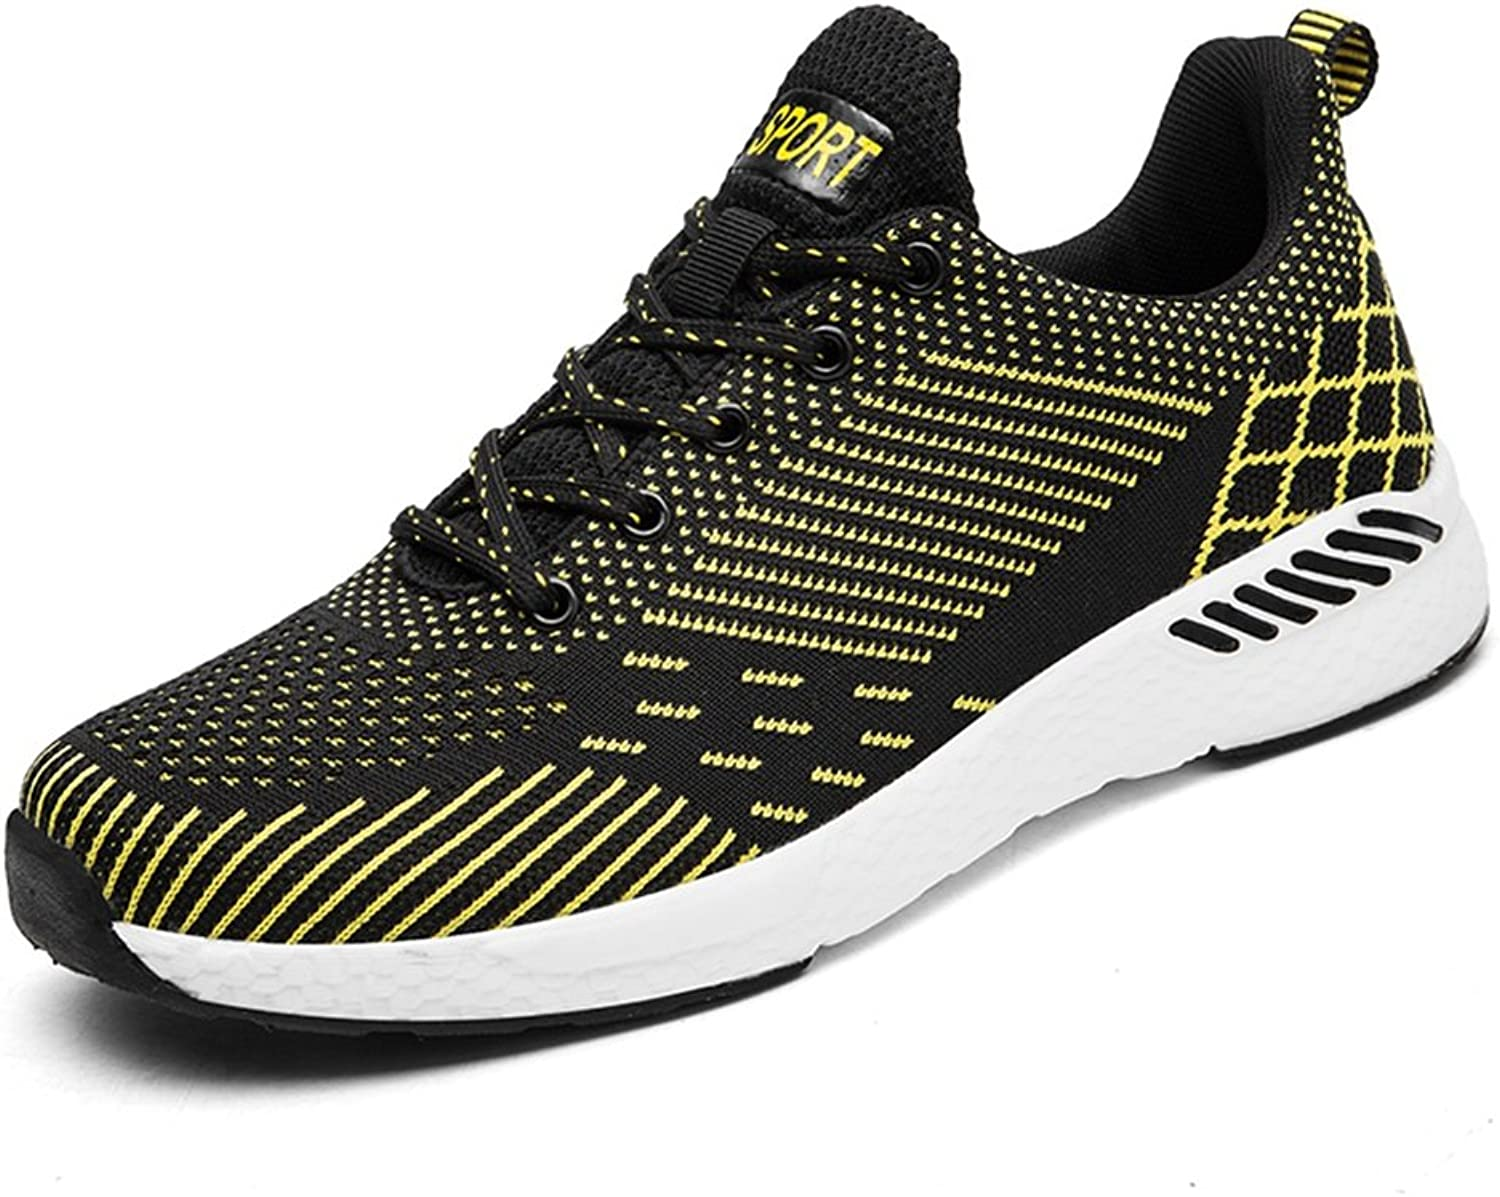 Battle Men Men's and Women's Athletic Sneakers Casual Style Summer Mesh Breathable Flying Weave A Couple of Running Sneaker Fashion (color   Yellow, Size   9.5 D(M) US)